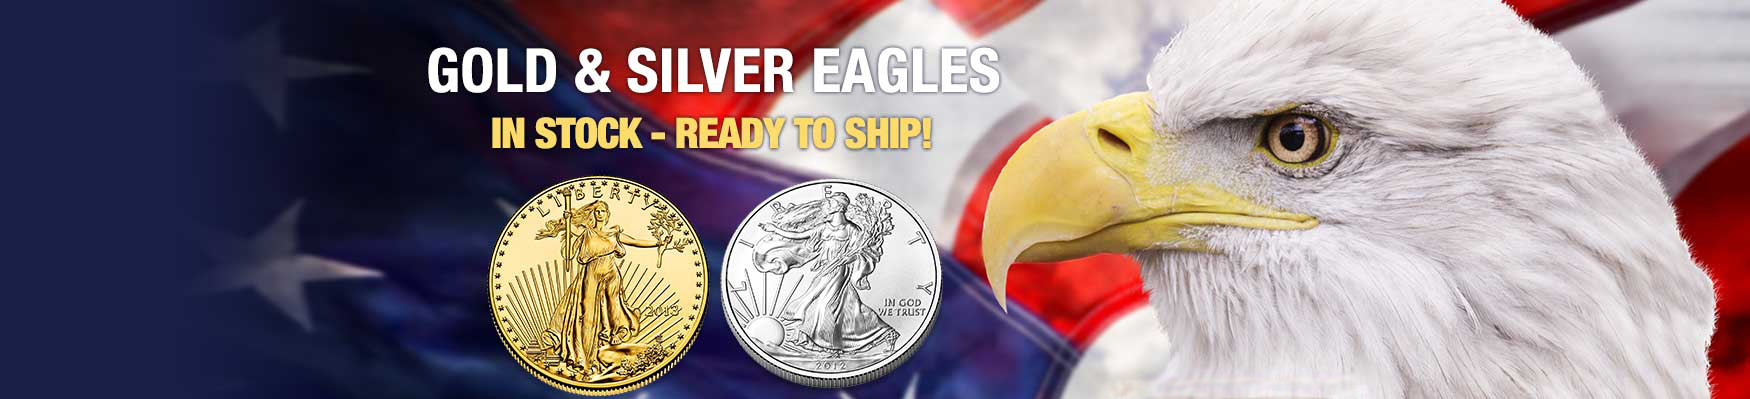 We are one of the premier gold and silver dealers online